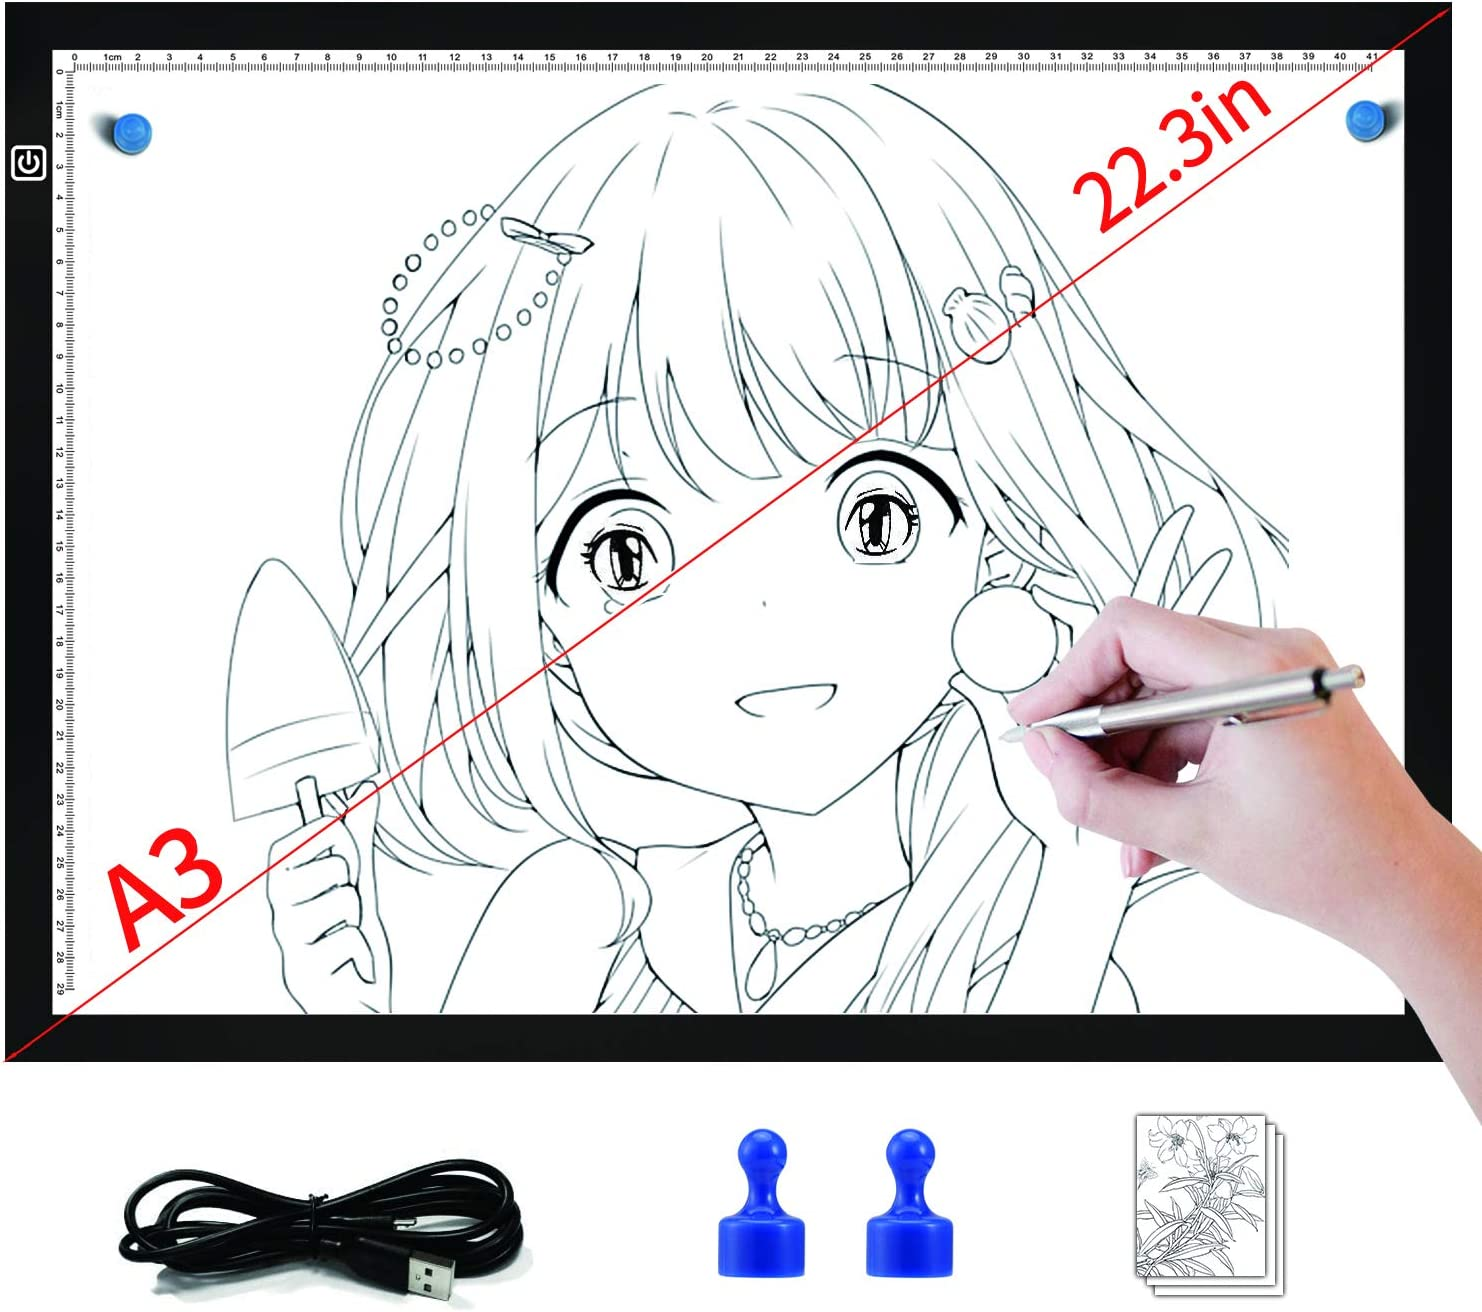 lzndeal A3/LED Light Box acrylique Dimmable Ultra Thin USB Powered Lights Pad for Tracing Sketching Designing